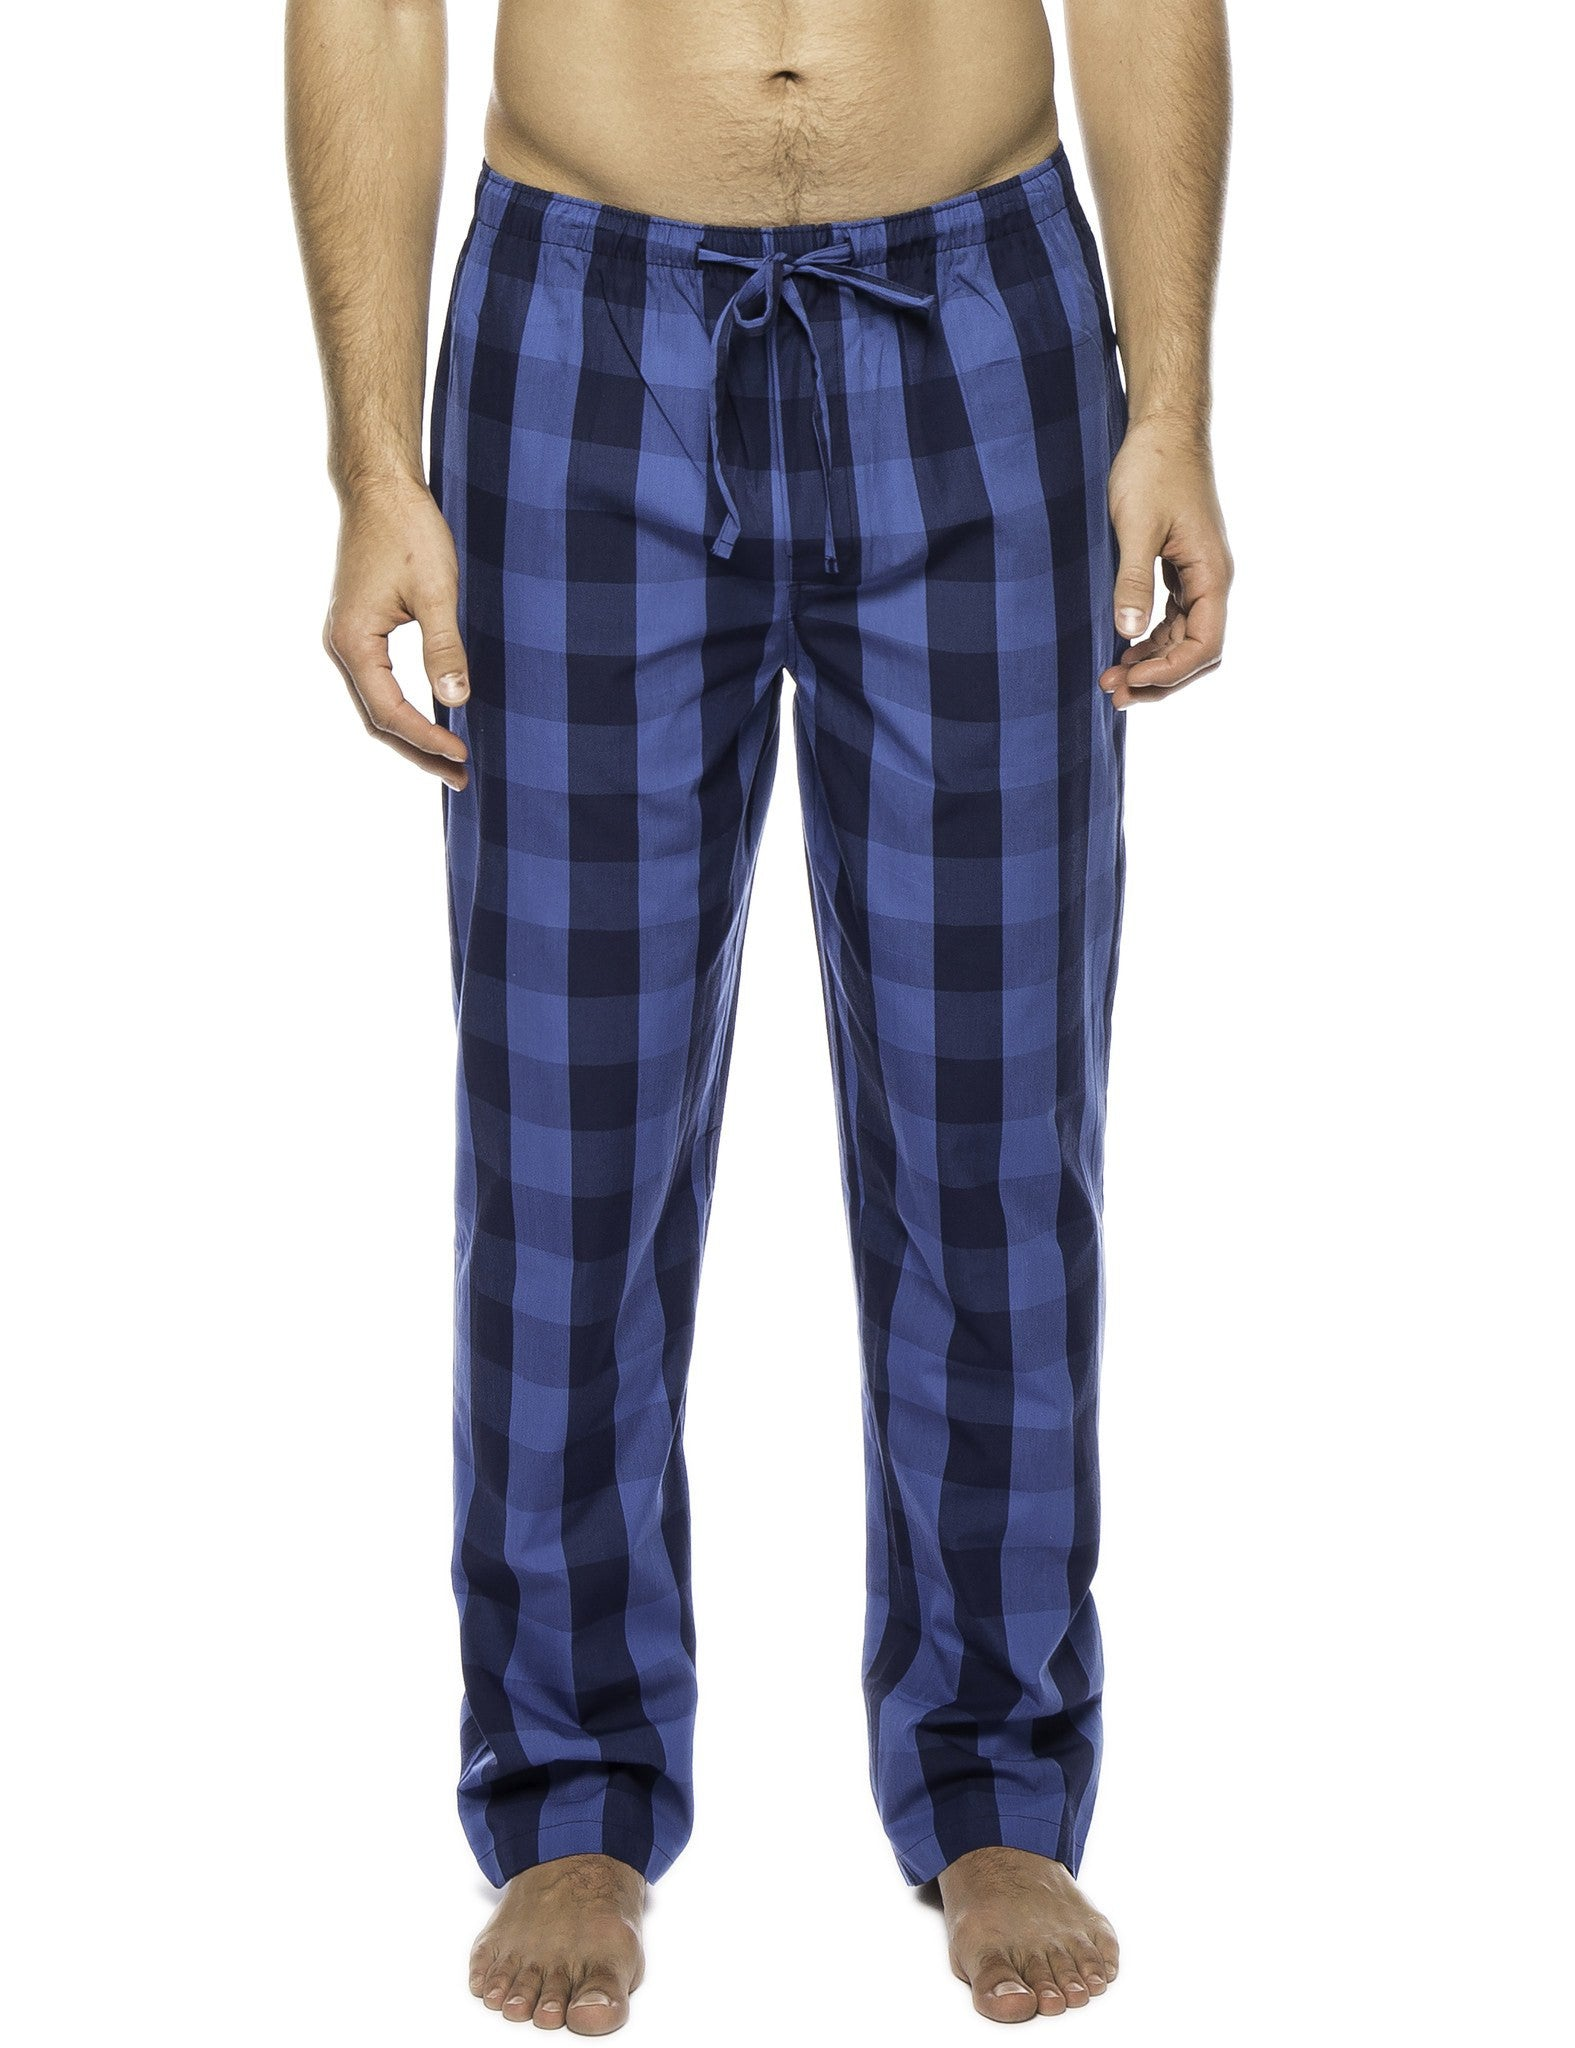 Men's 100% Woven Cotton Lounge Pants